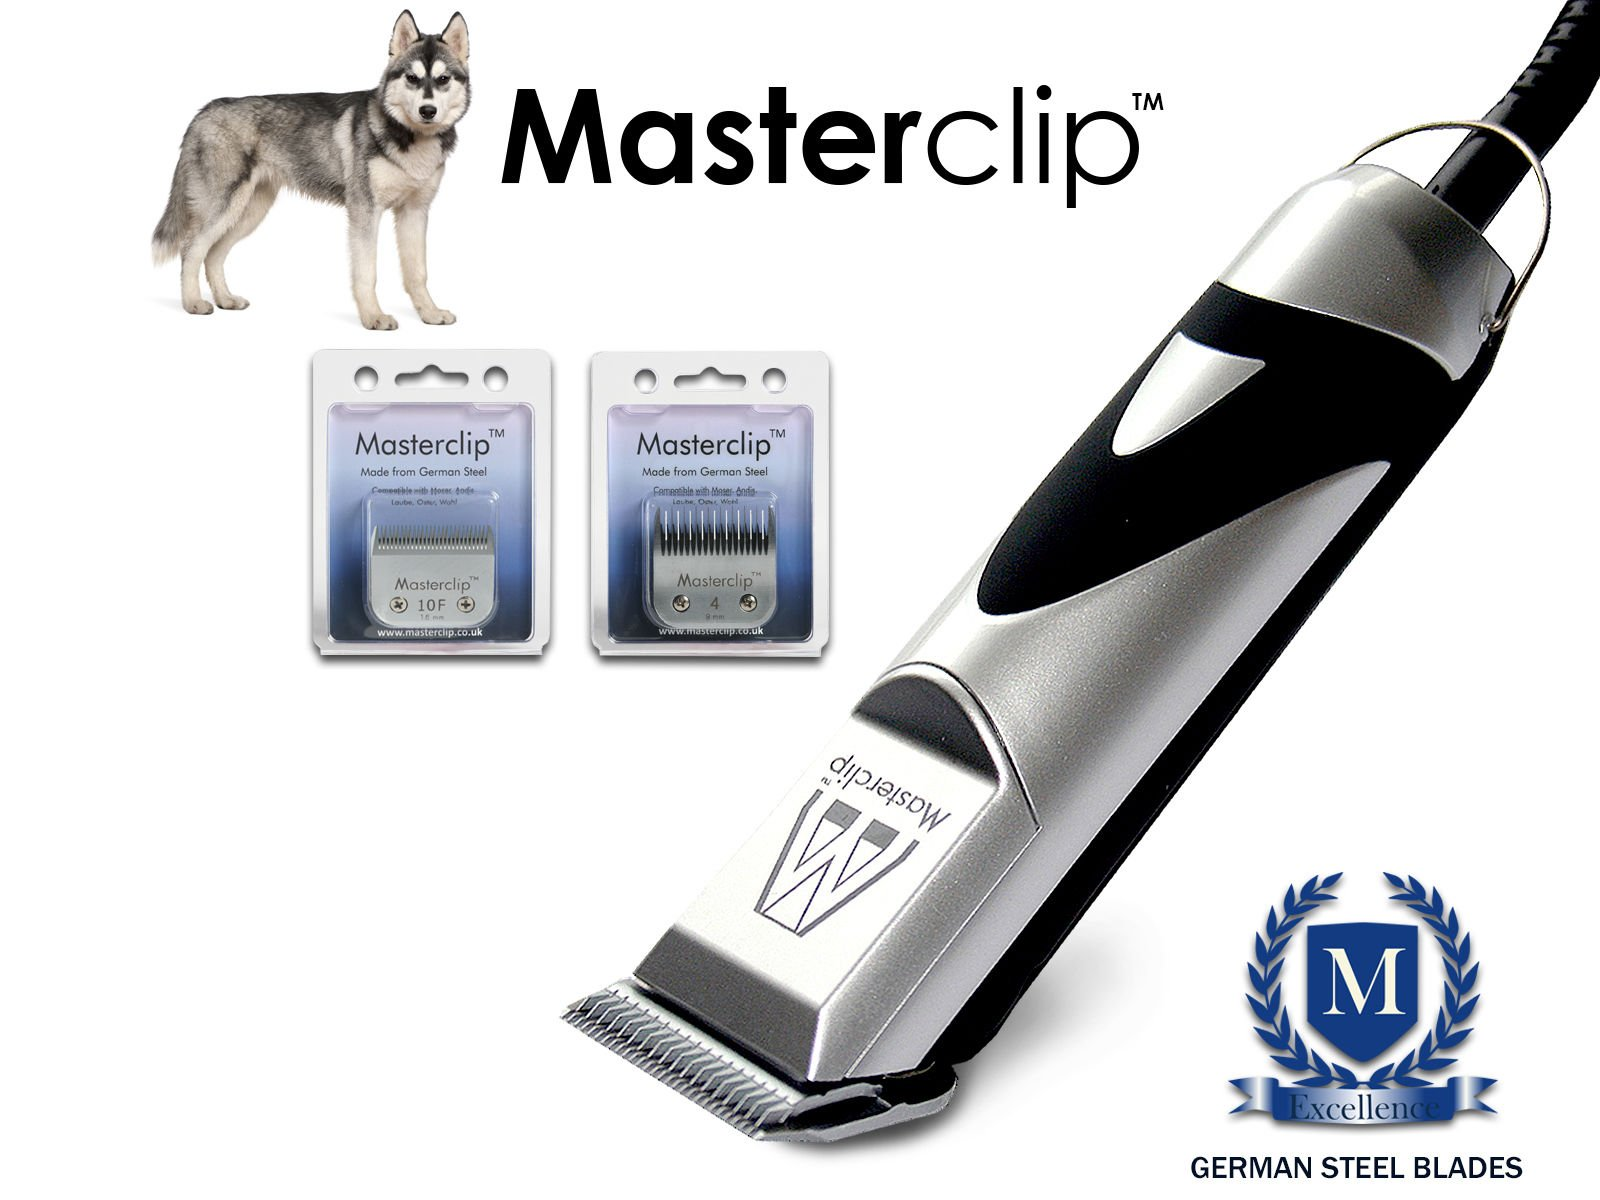 Masterclip Siberian Husky Professional Dog Clippers Set Pet Grooming Clipper Trimmer Supplies